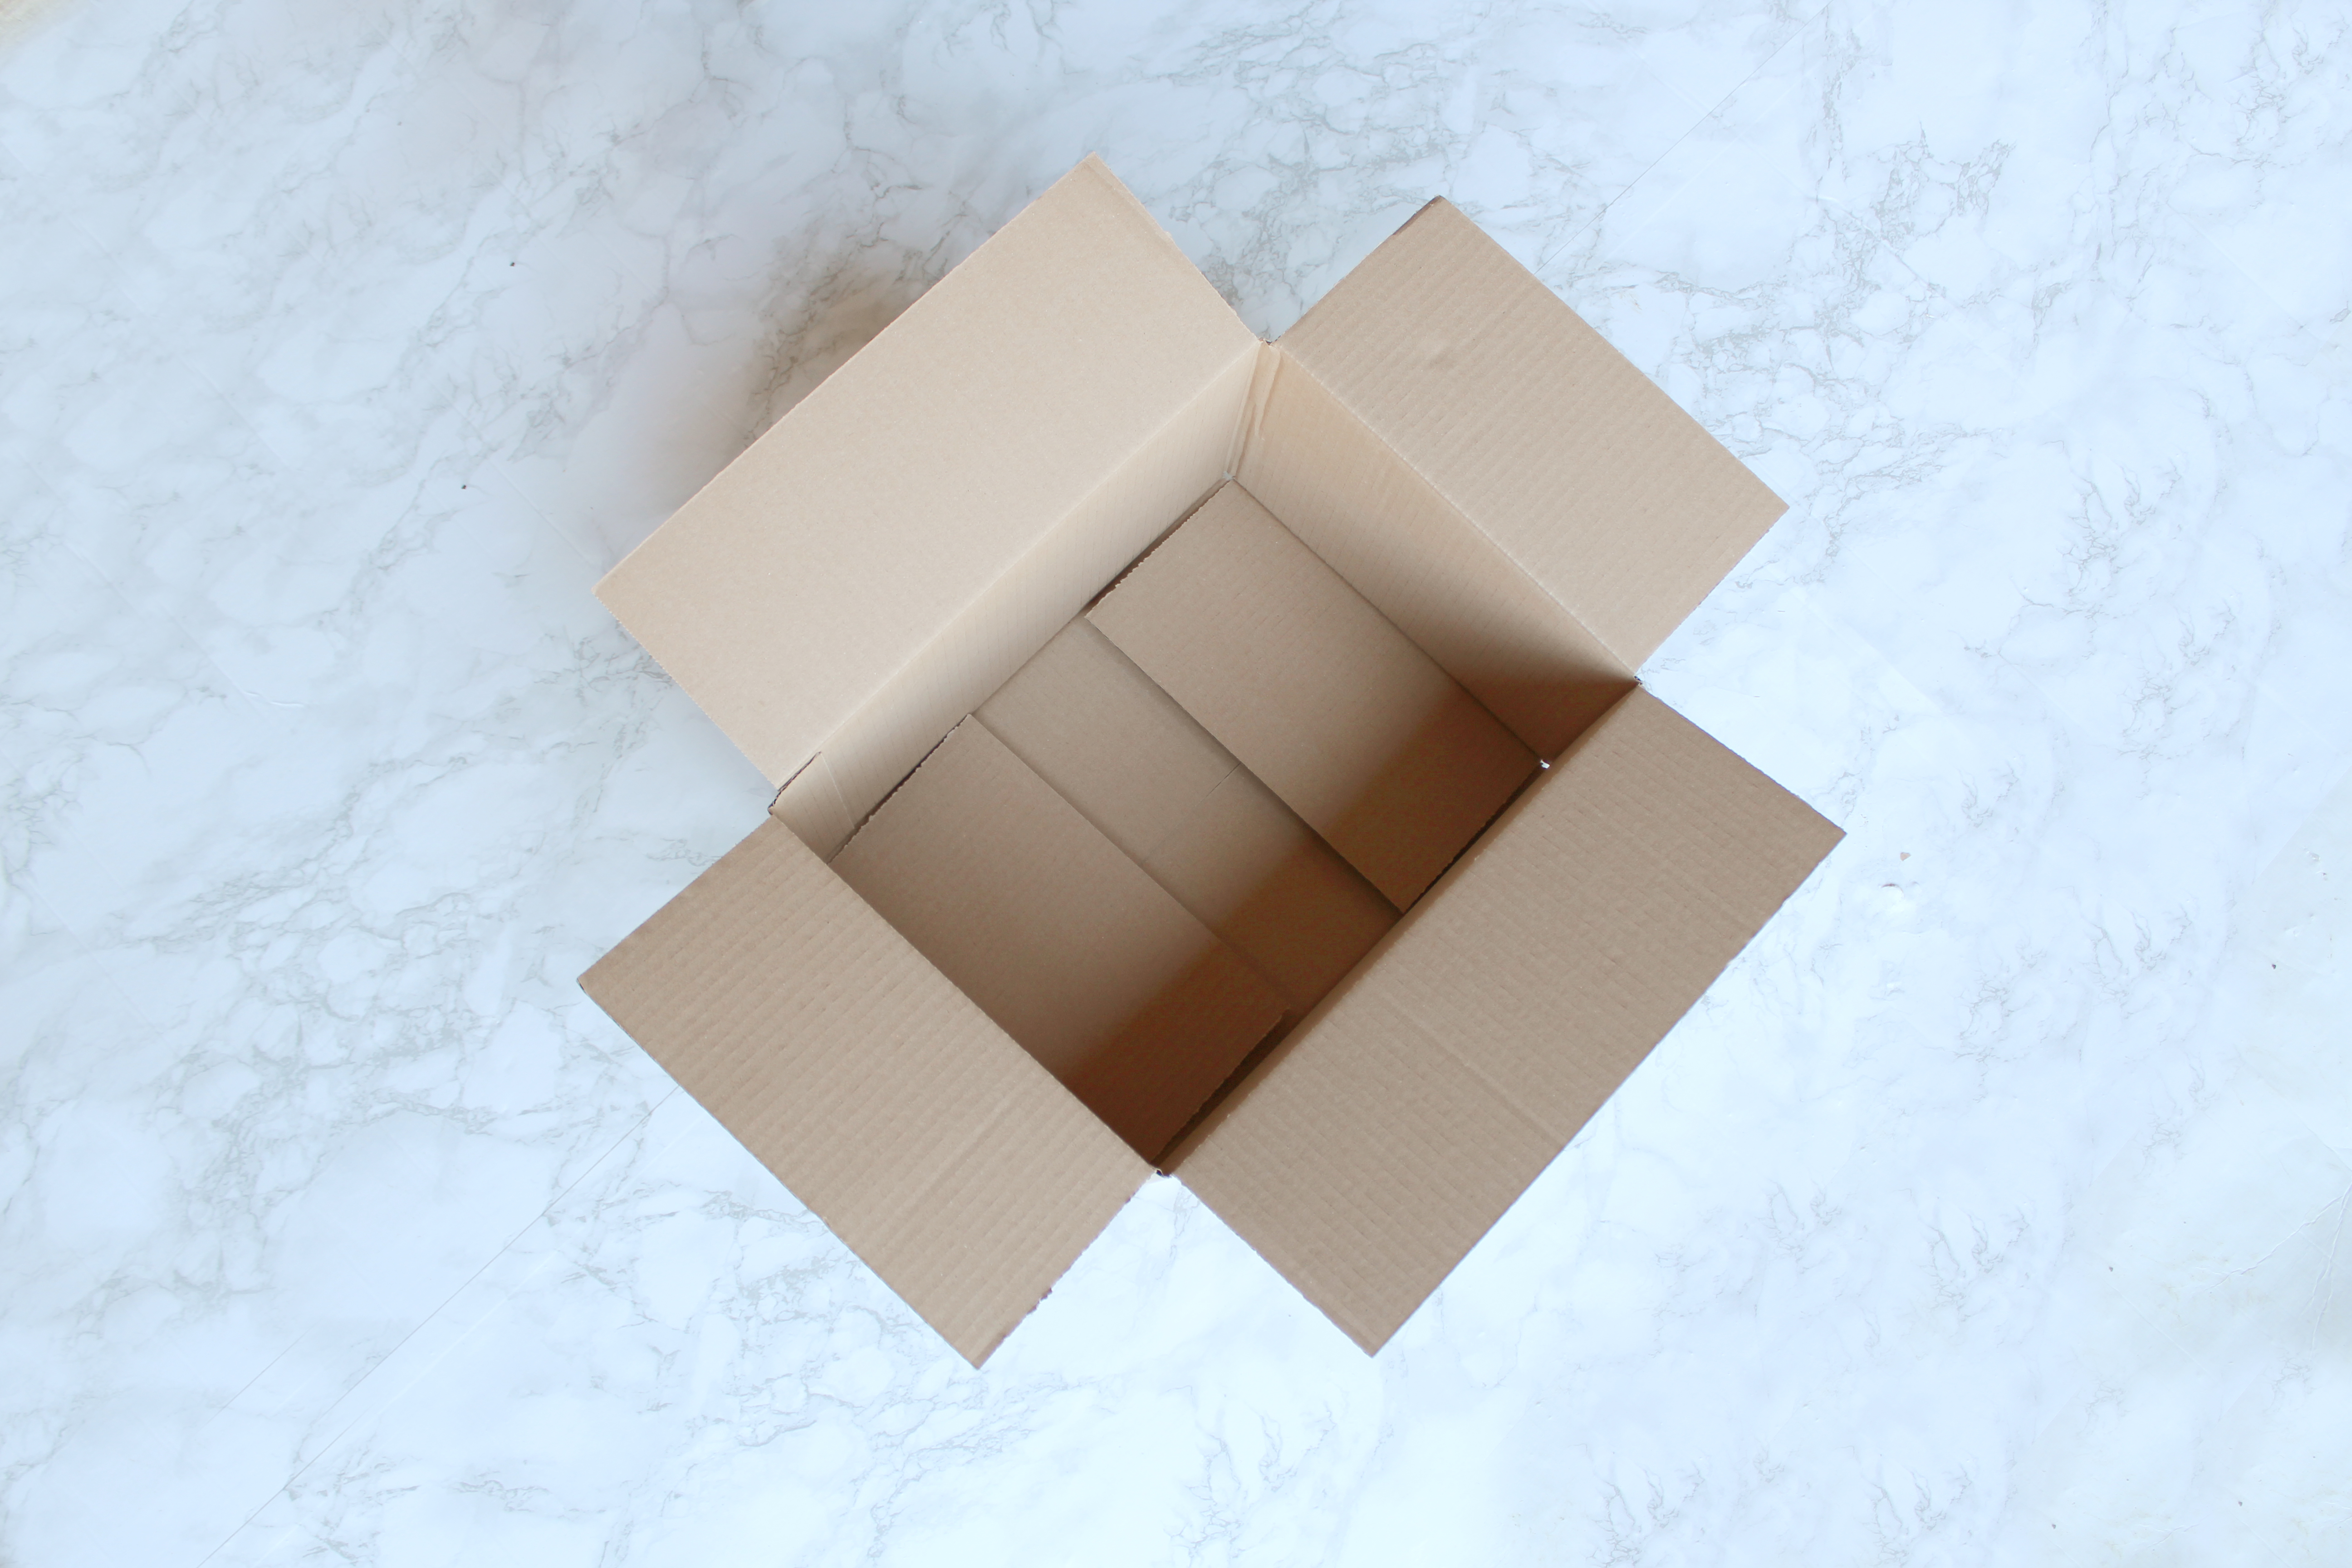 Eco-friendly cardboard box packaging for small businesses